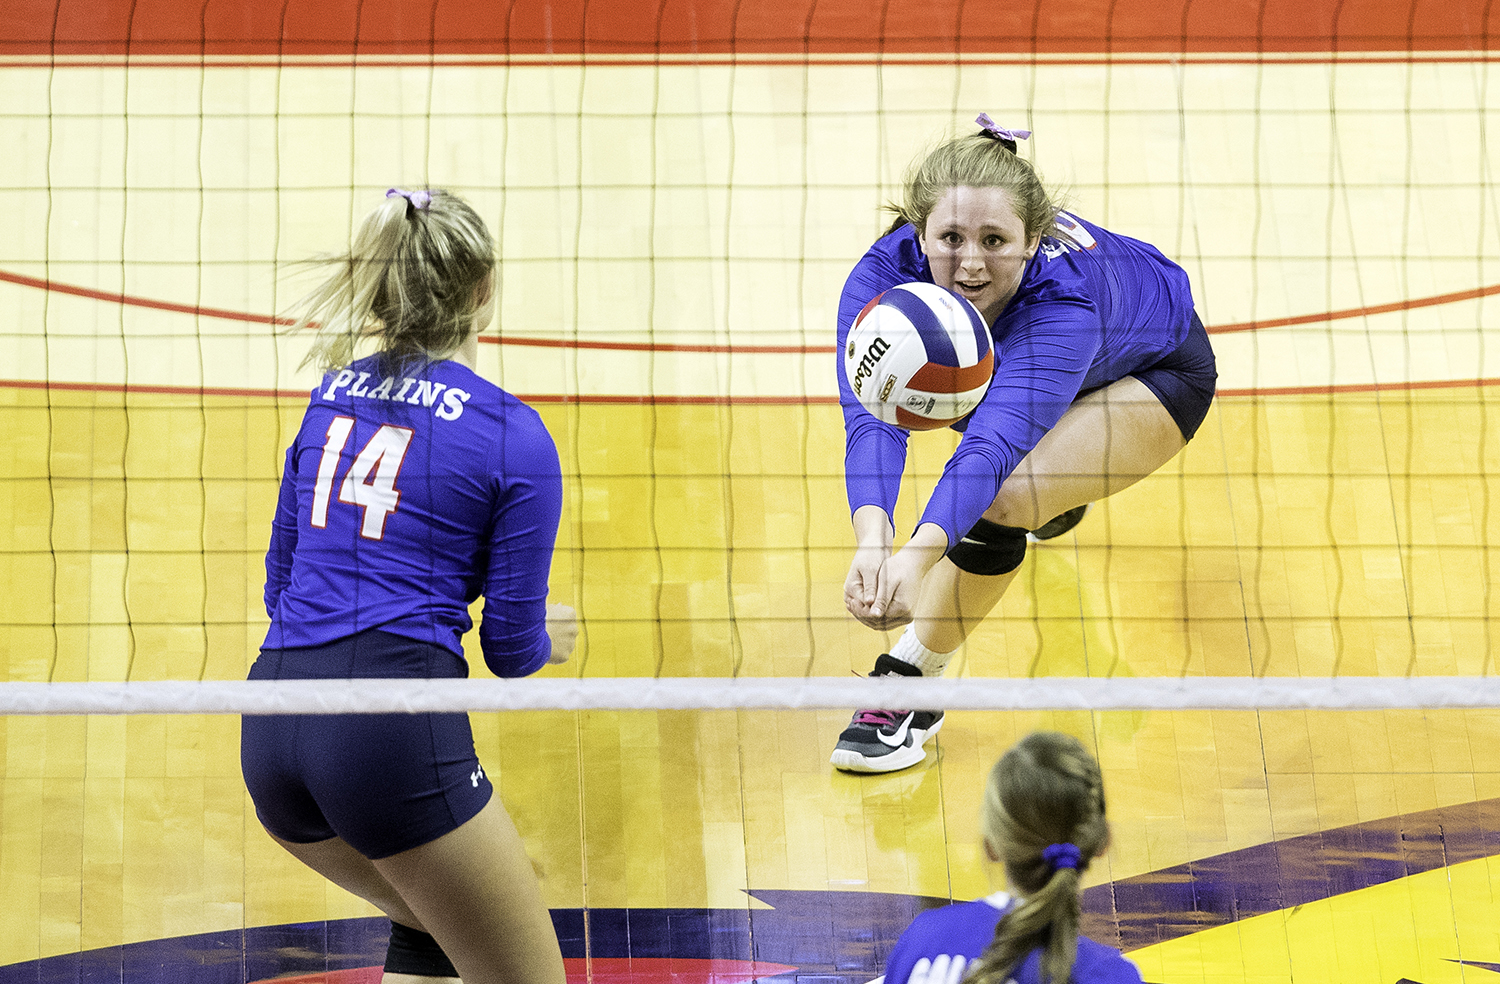 Pleasant Plains' McKenzie Smith digs a ball against Galena during the IHSA Class 2A Volleyball championship at Redbird Arena in Normal Saturday, Nov. 10, 2018. [Ted Schurter/The State Journal-Register]